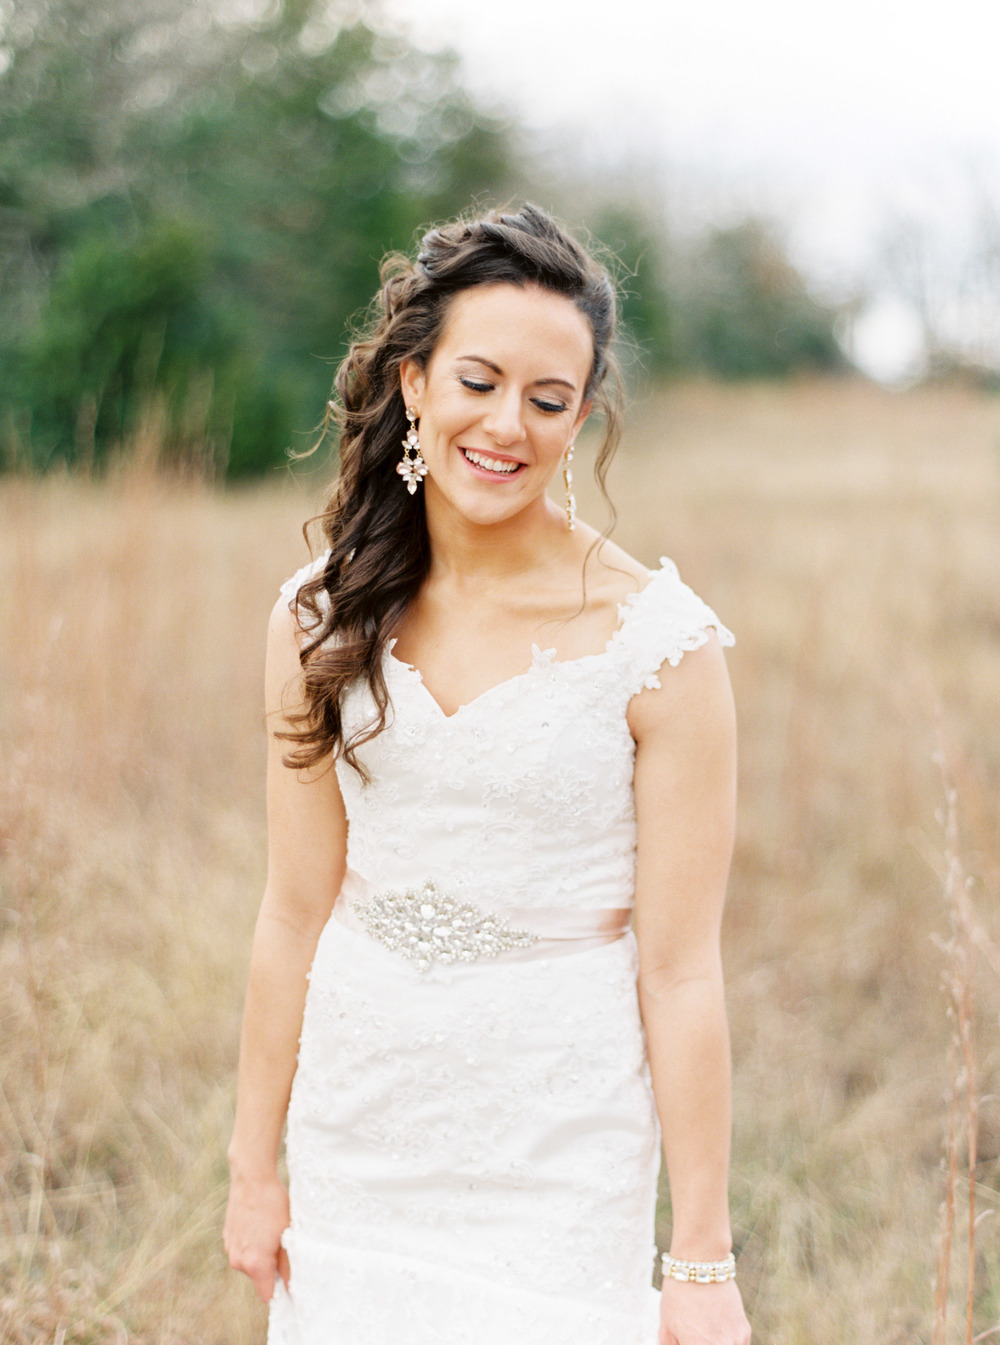 Sarah Best Photography - Emily's Bridals-125.jpg